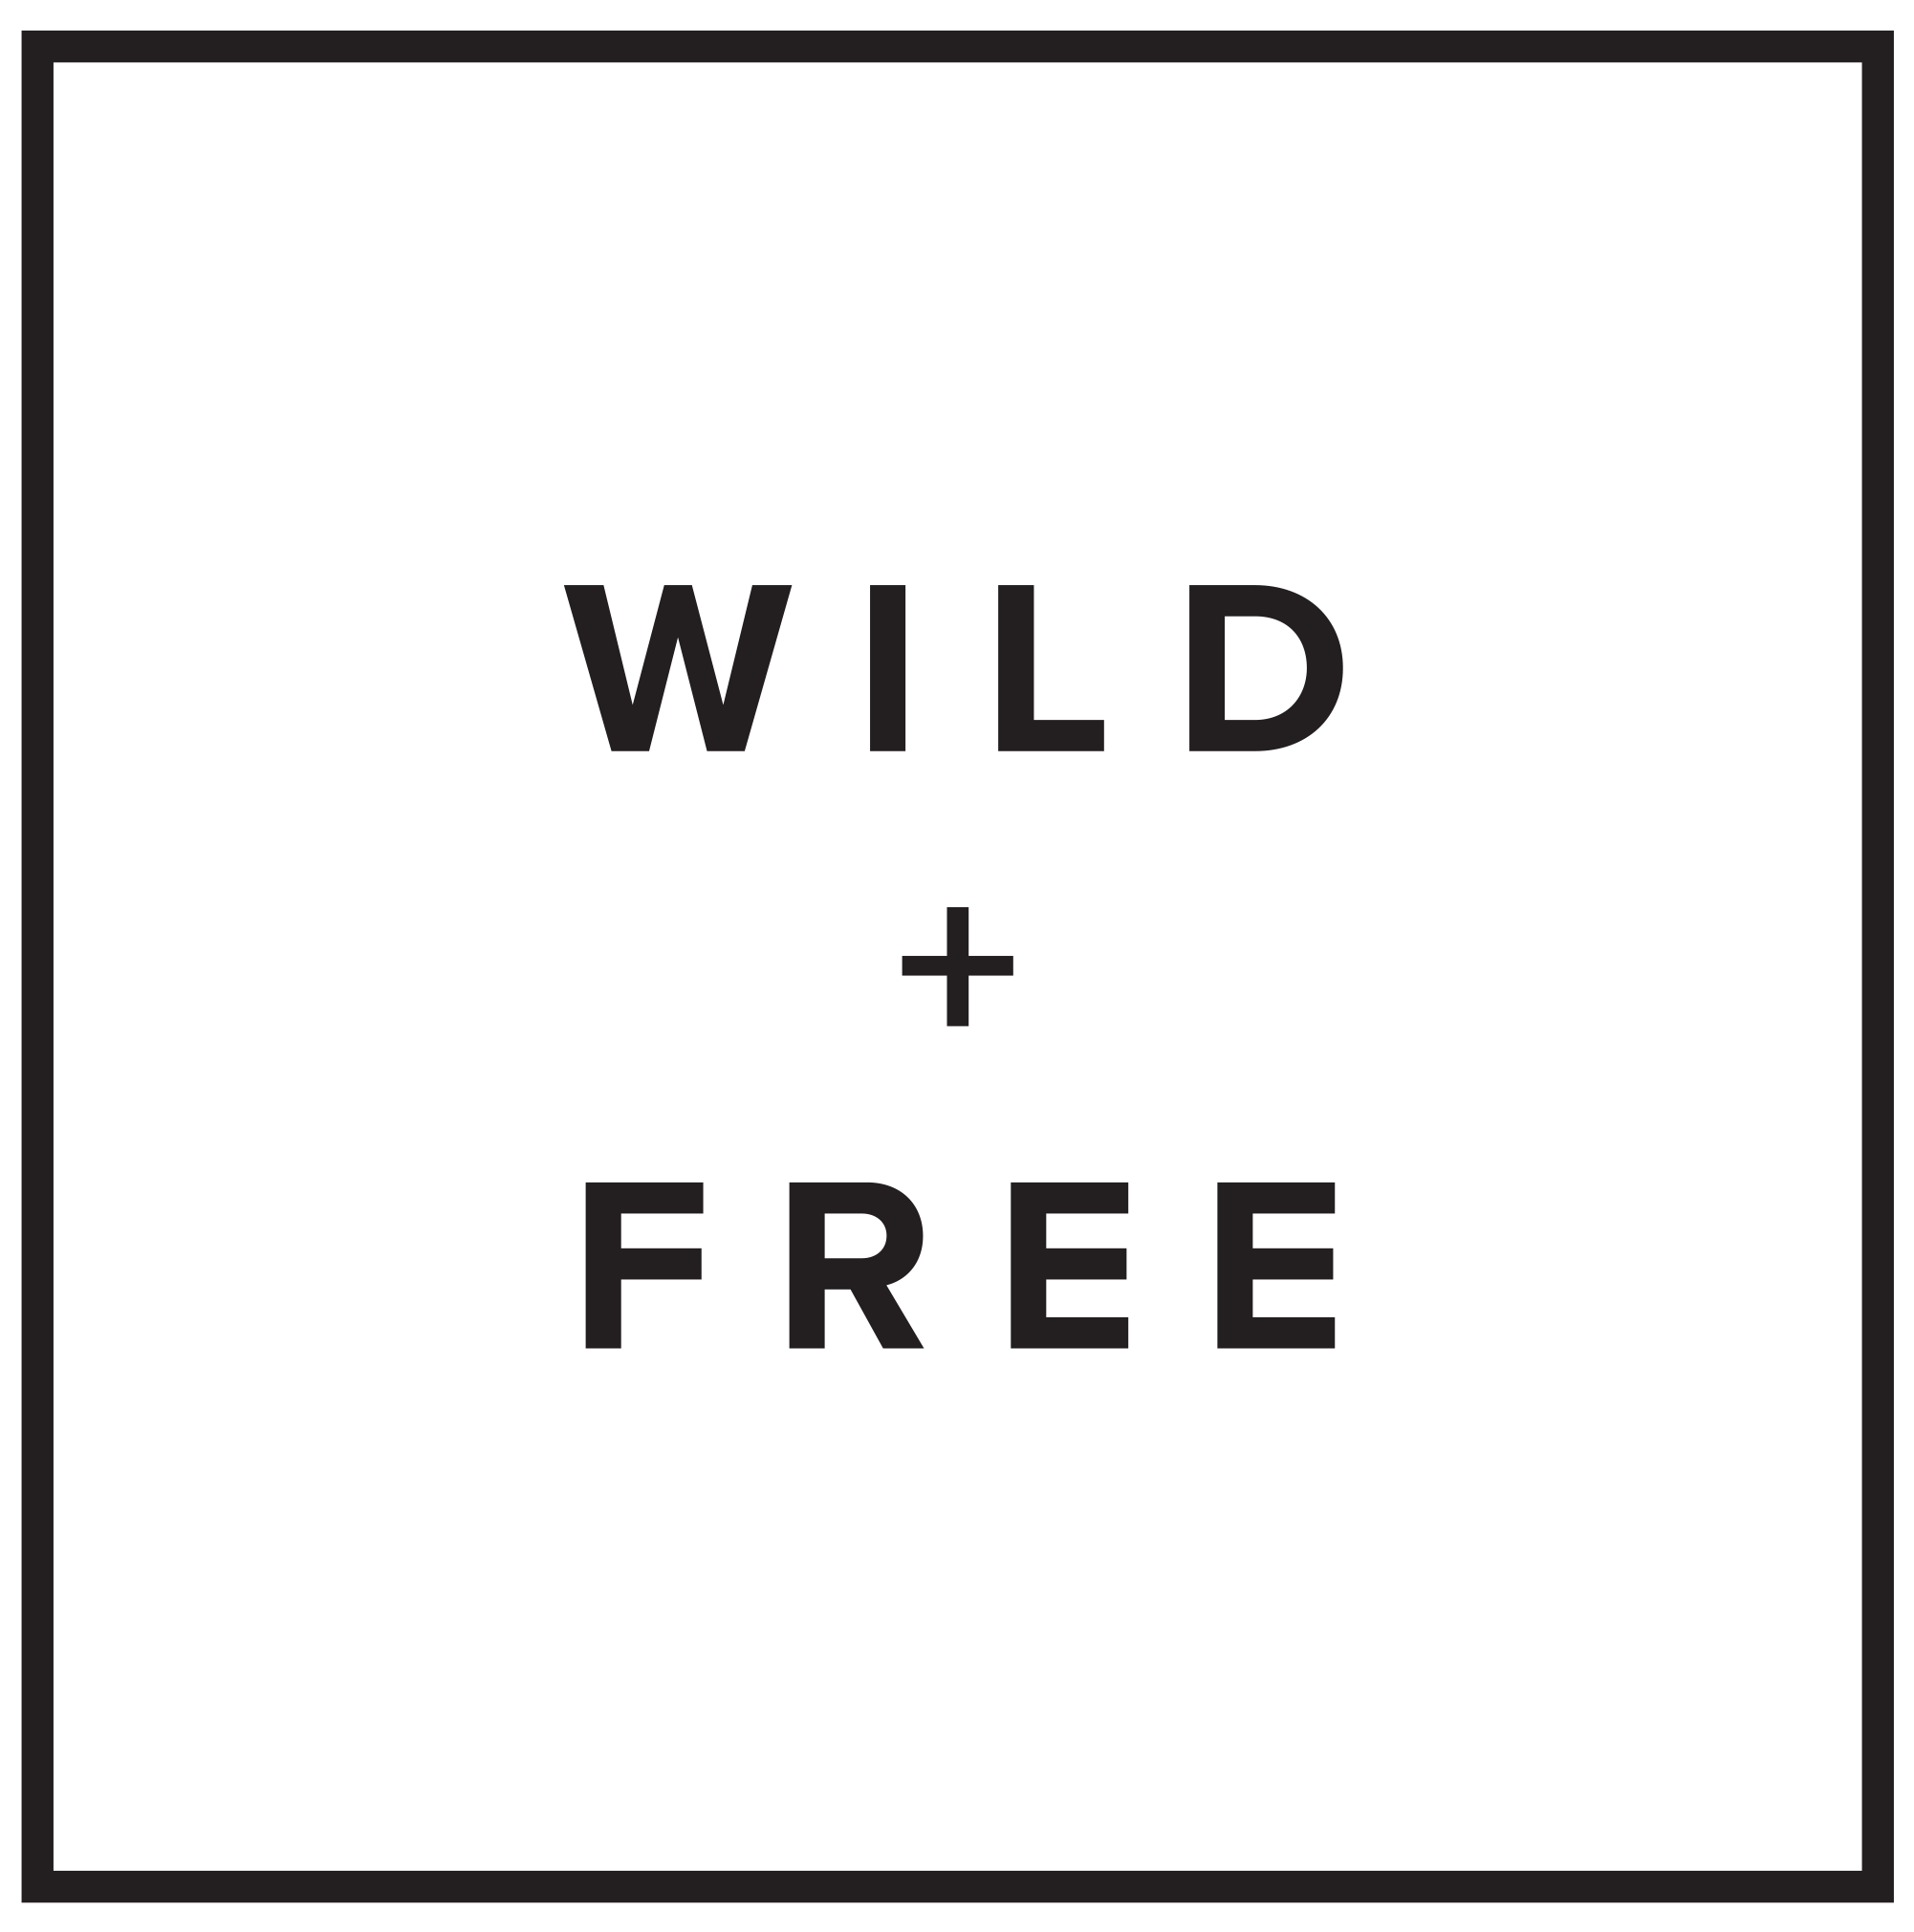 Wild + Free - For as long as humans have lived on this earth, children have been schooled at home. Still, we homeschooling mamas often feel like pioneers forging a new path for the next generation. It's not easy, but with a community of women to support and encourage each other, we're going to make it and have incredible stories to share and inspire. Here's to being a pioneer…